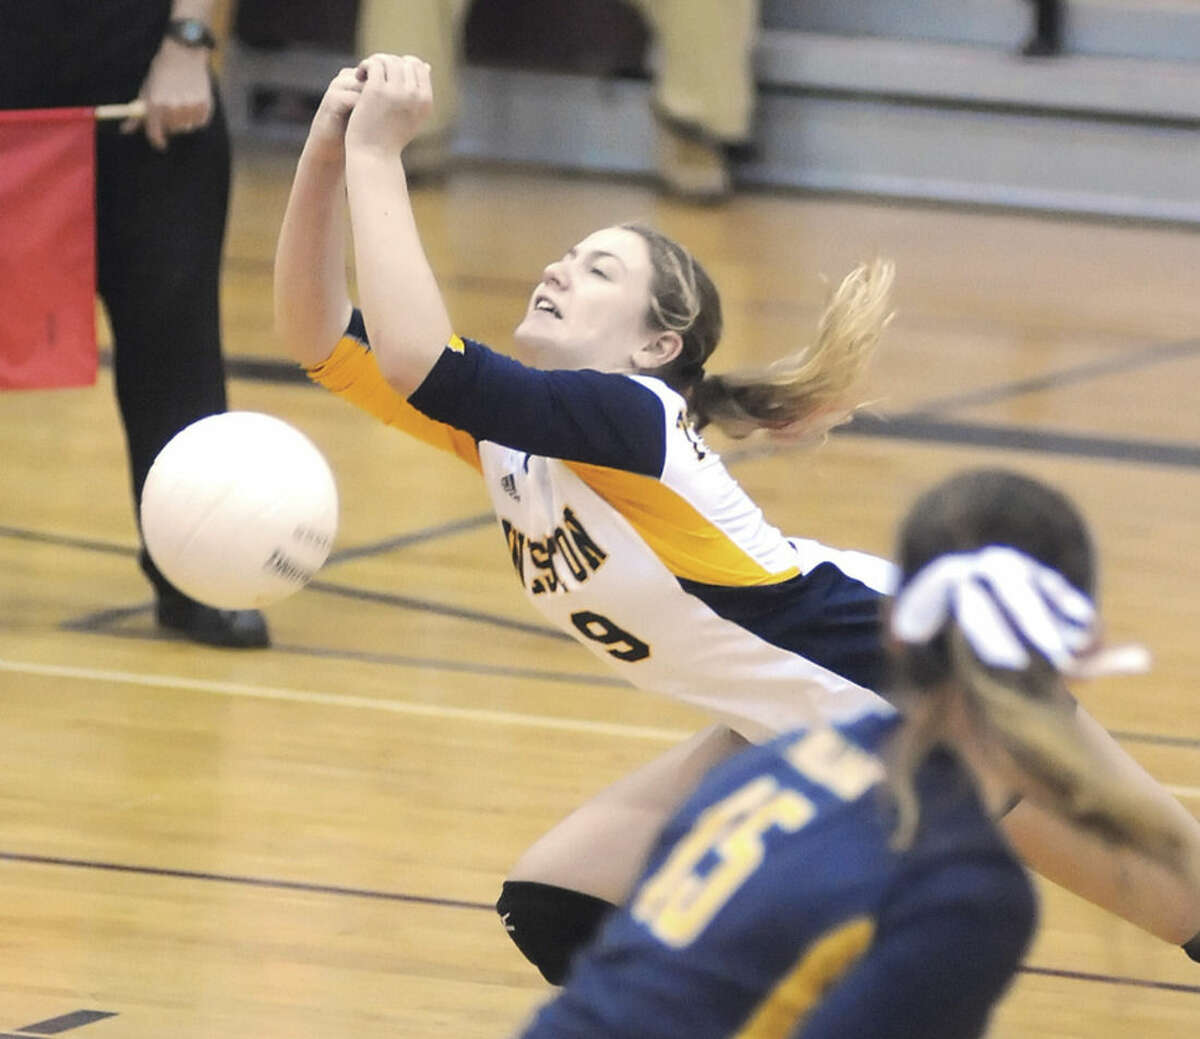 Hour photo/John Nash Weston's Melissa Welsh, rear, can't come up with a dig as Trojans libero Olivia Donnelly looks on during Saturday night's SWC Championship game in Bethel. Joel Barlow defeated Weston, 3-1.